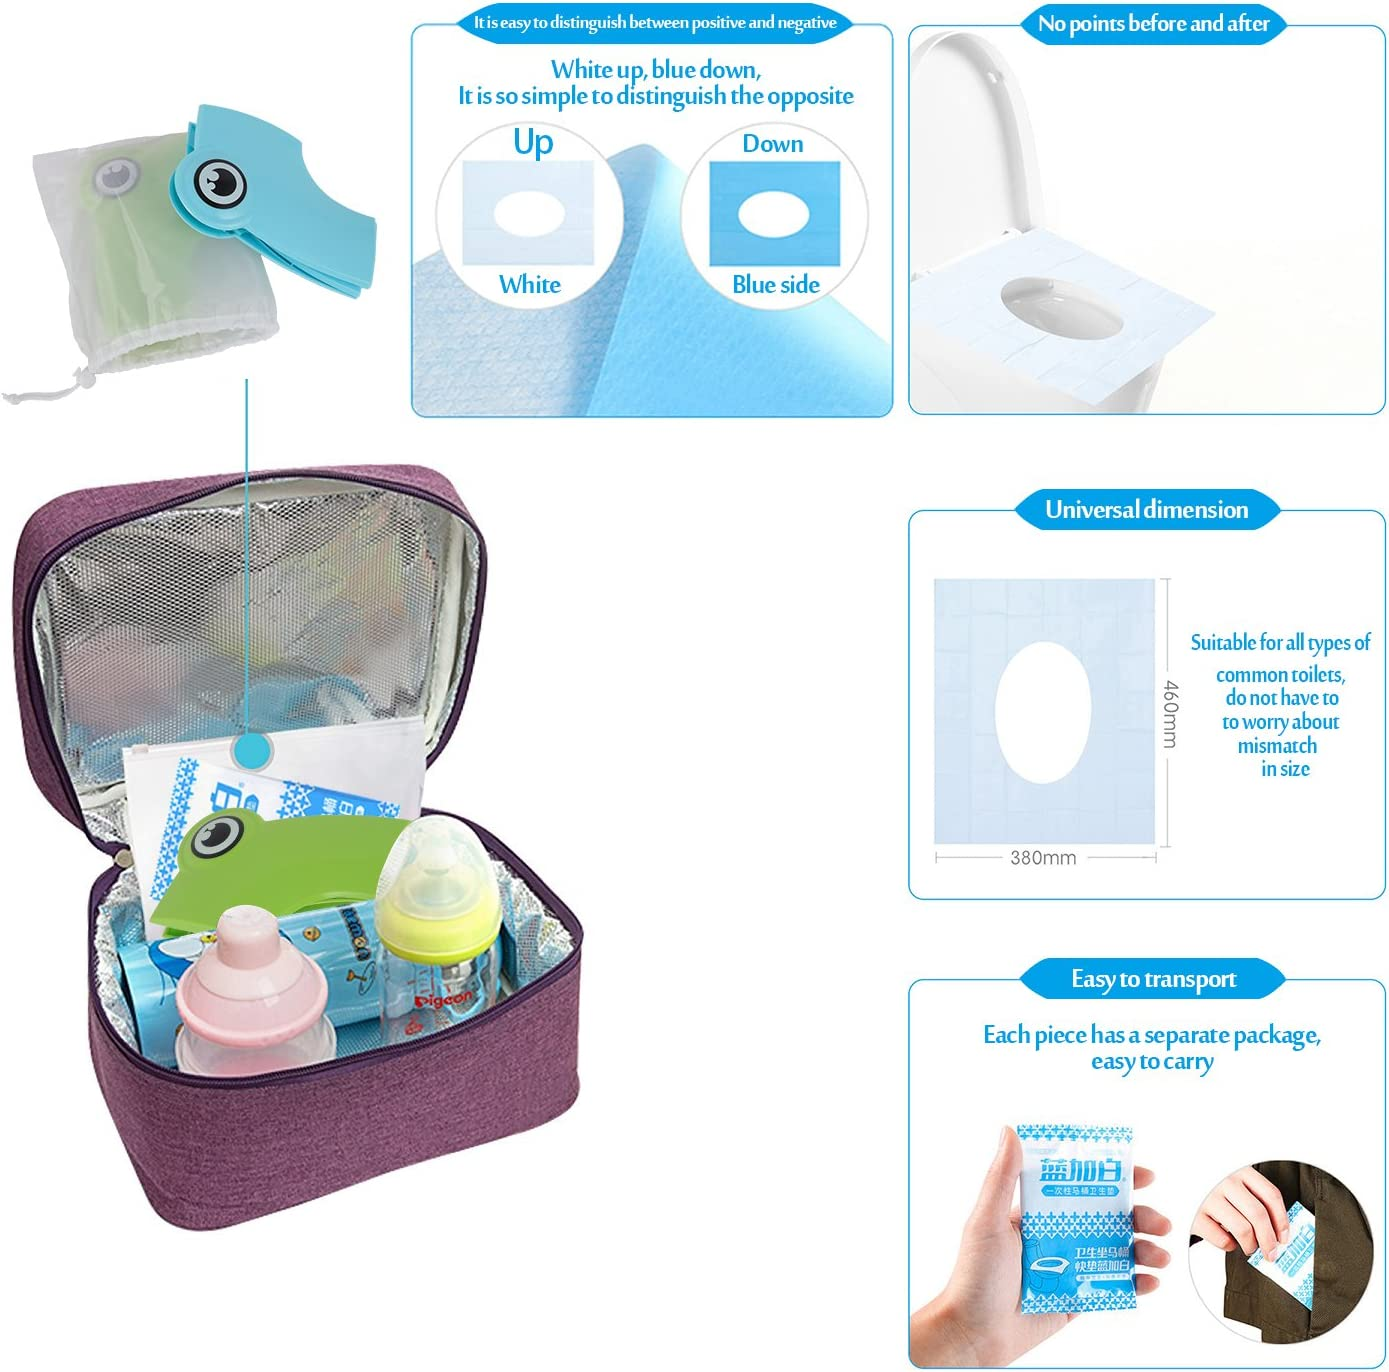 Non Slip Silicone Pads Travel Portable Folding Potty Training Toilet Seat Cover Suitable for Kids Baby Boys and Girls,with 10 Packs Disposable Toilet Seat Covers and Potty Training Recording Card